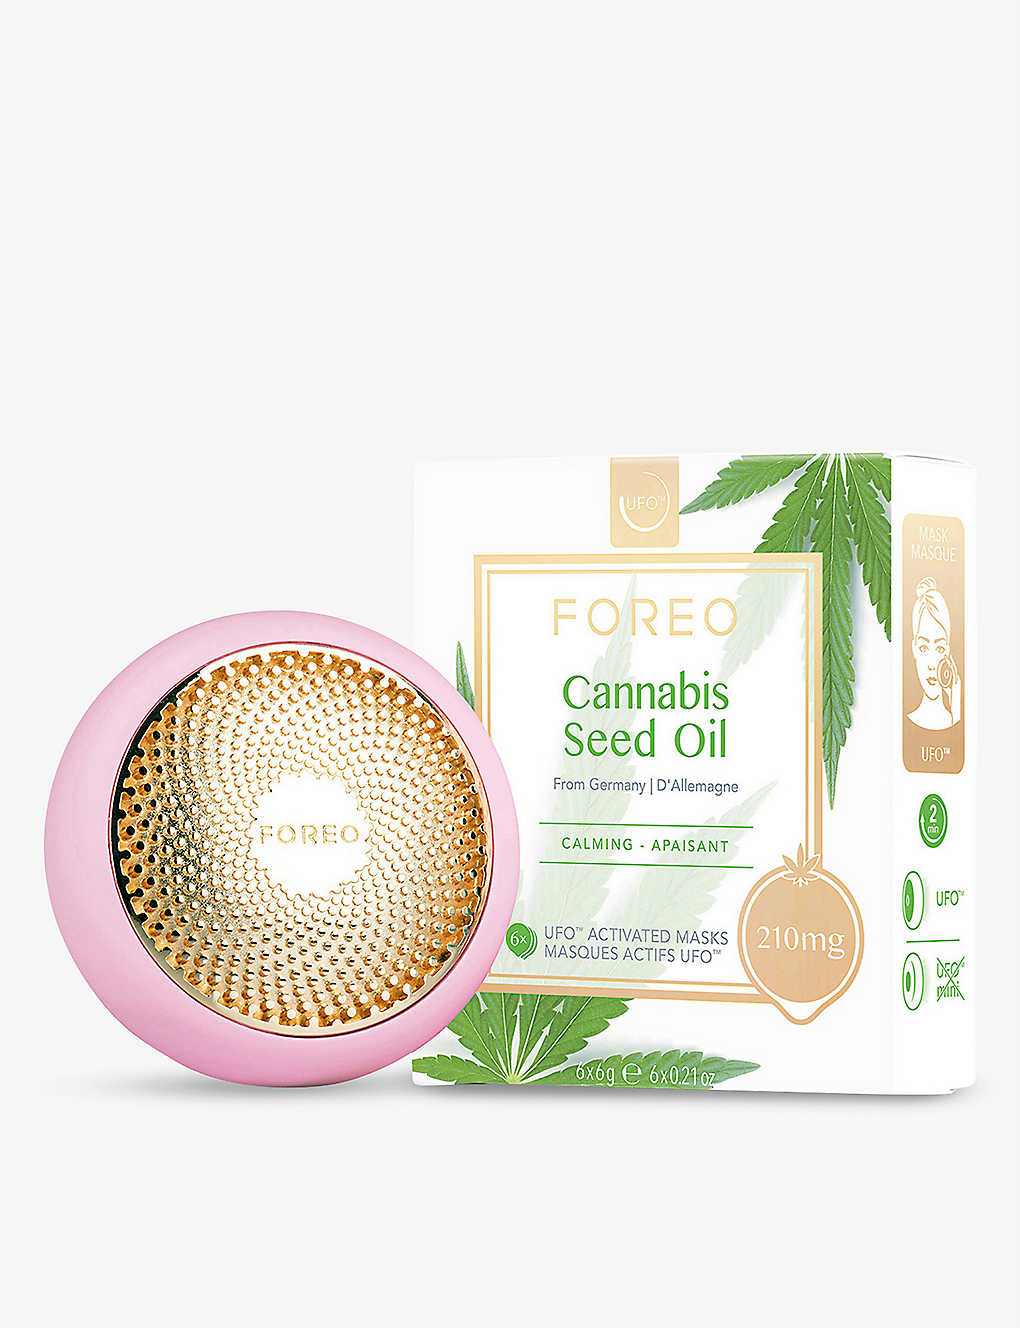 FOREO: Cannabis Seed Oil mask 6 x 6g